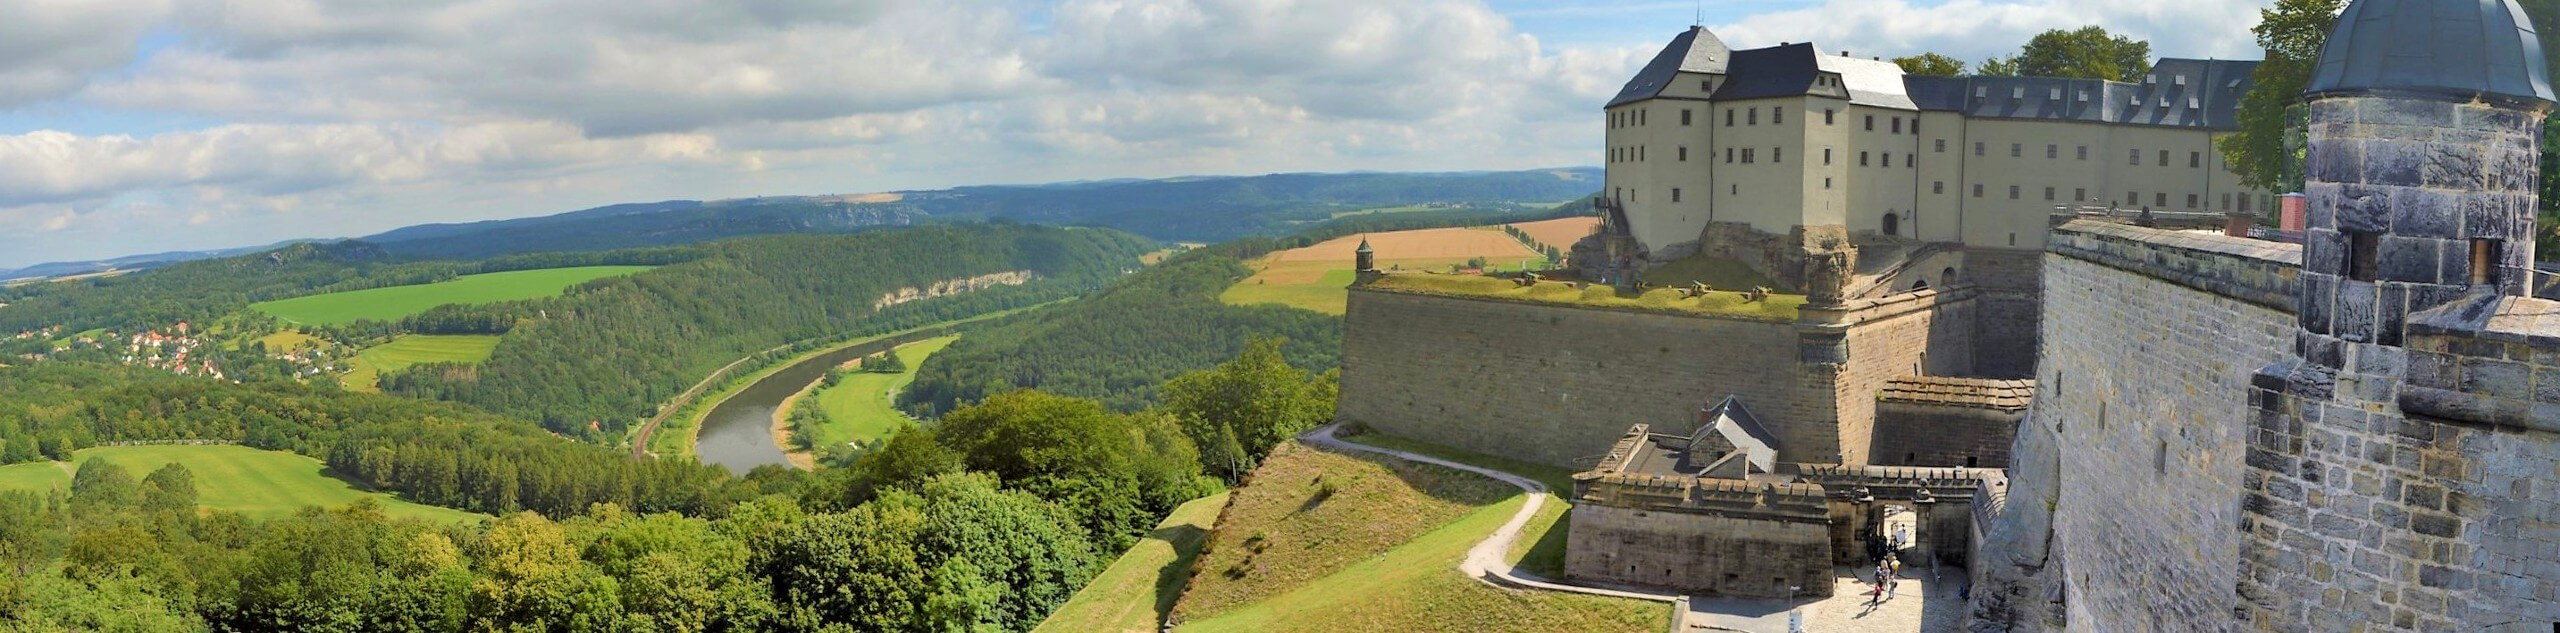 Natural Beauty of the Czech Republic and Germany Tour